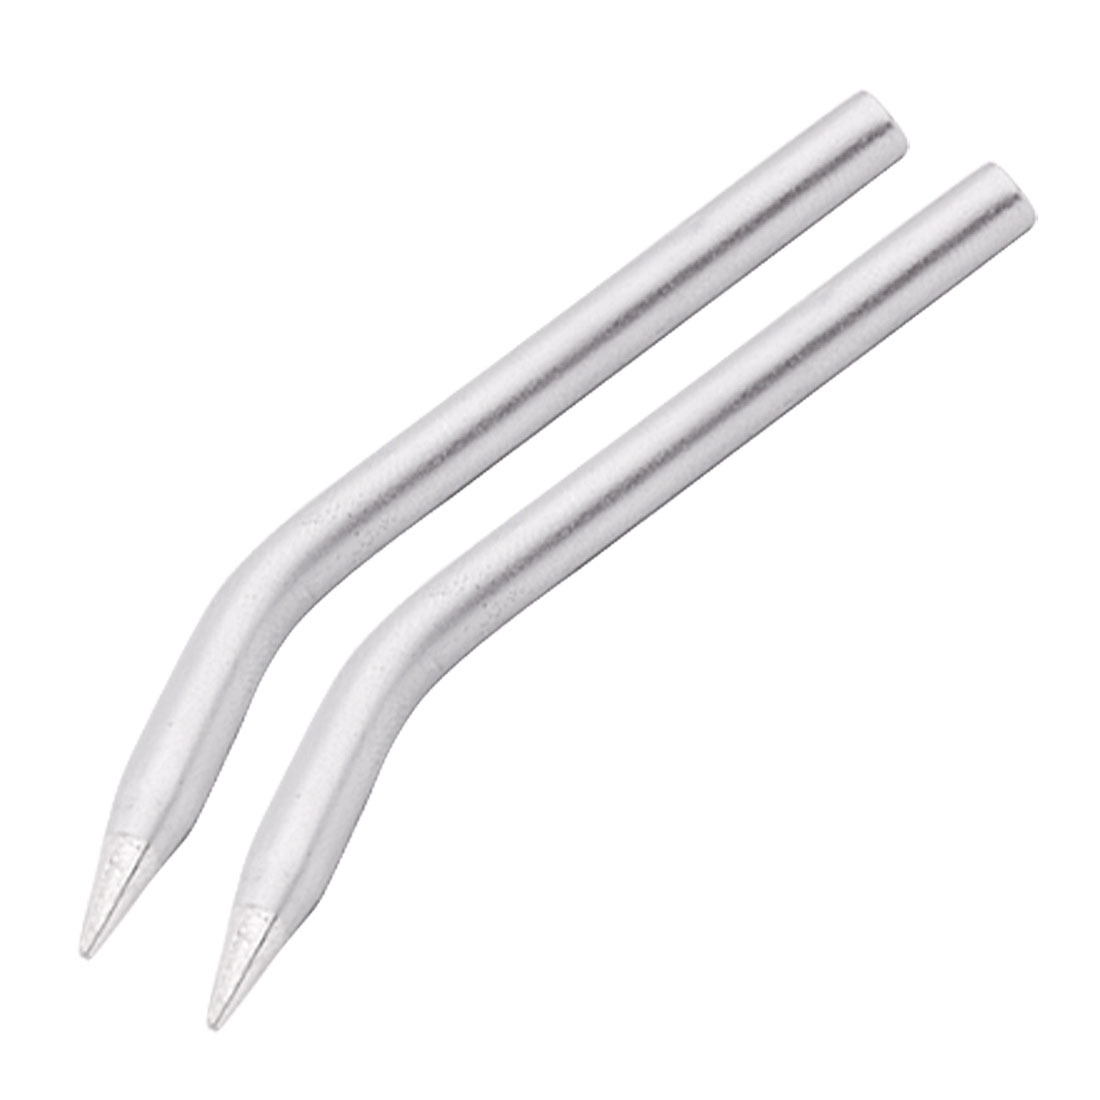 Replacement 4.5mm Diameter Soldering Iron Tool Bent Tip 2pcs